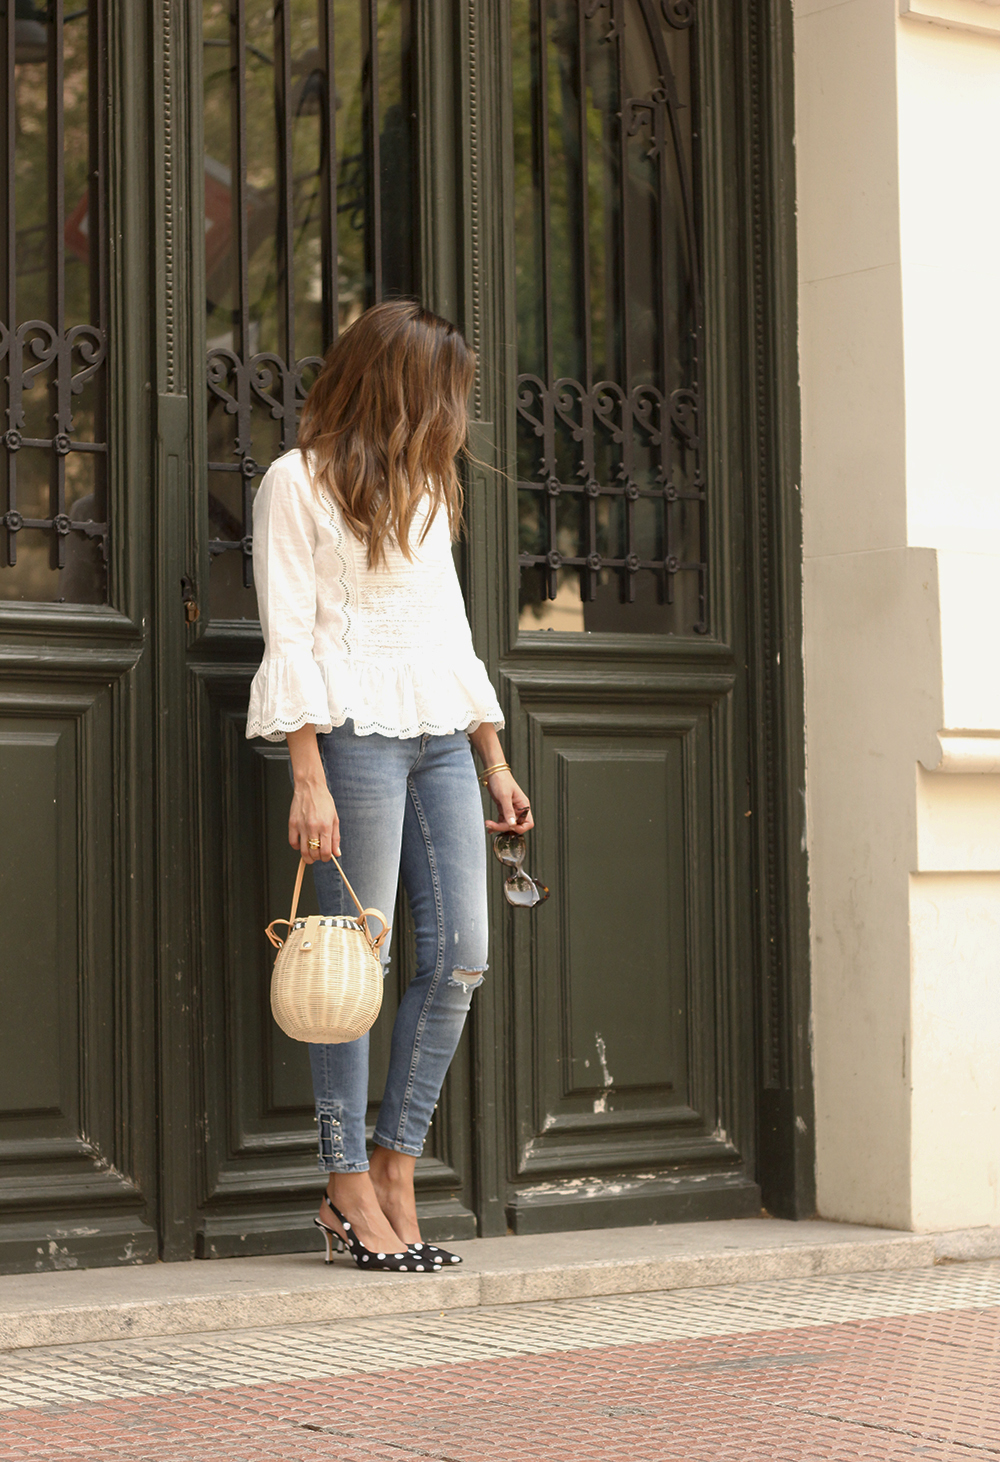 polka dot kitten heels white blouse ripped jeans outfit girl style fashion01